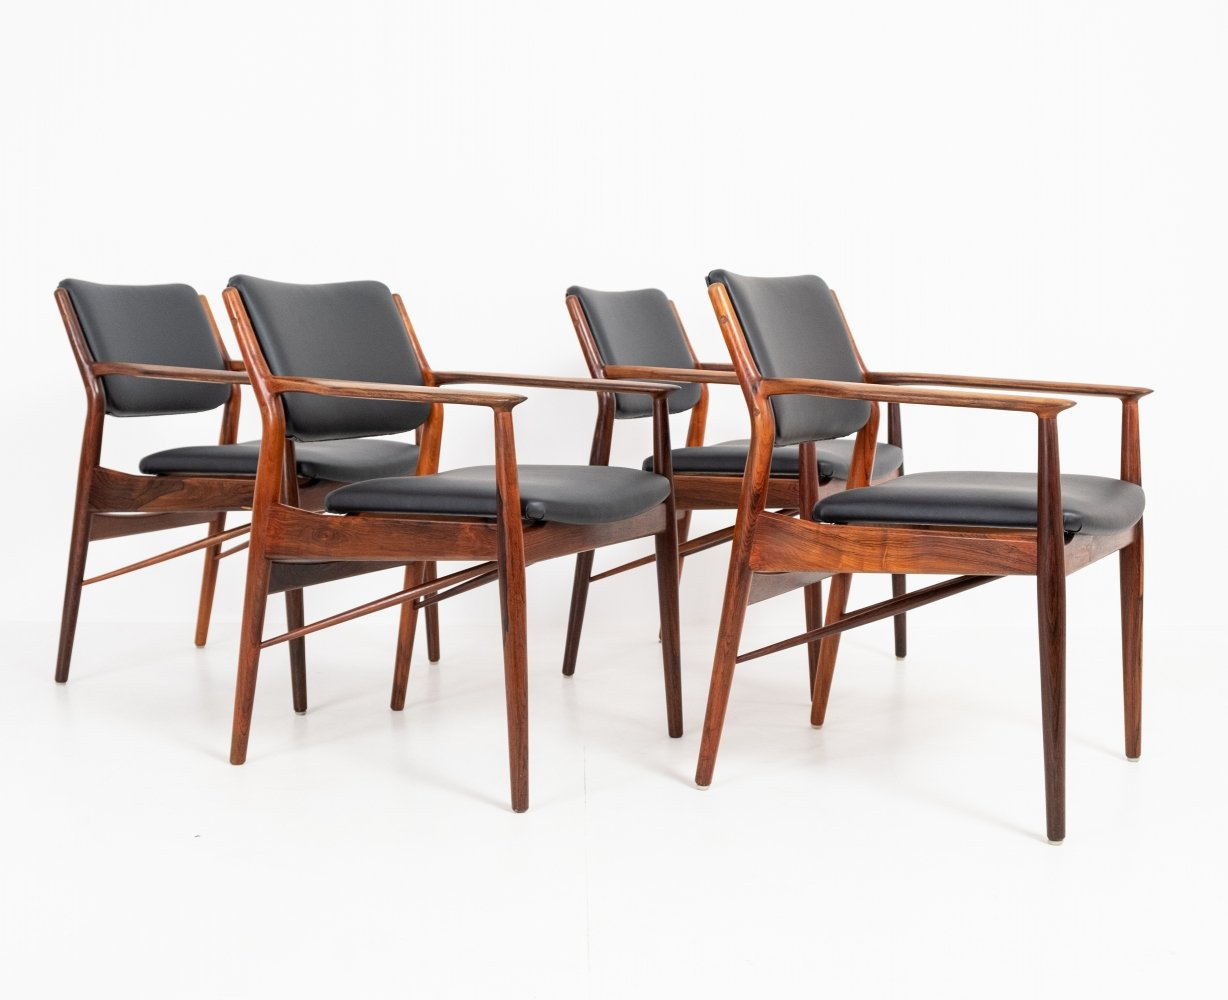 4 armchairs by Arne Vodder, 1960s